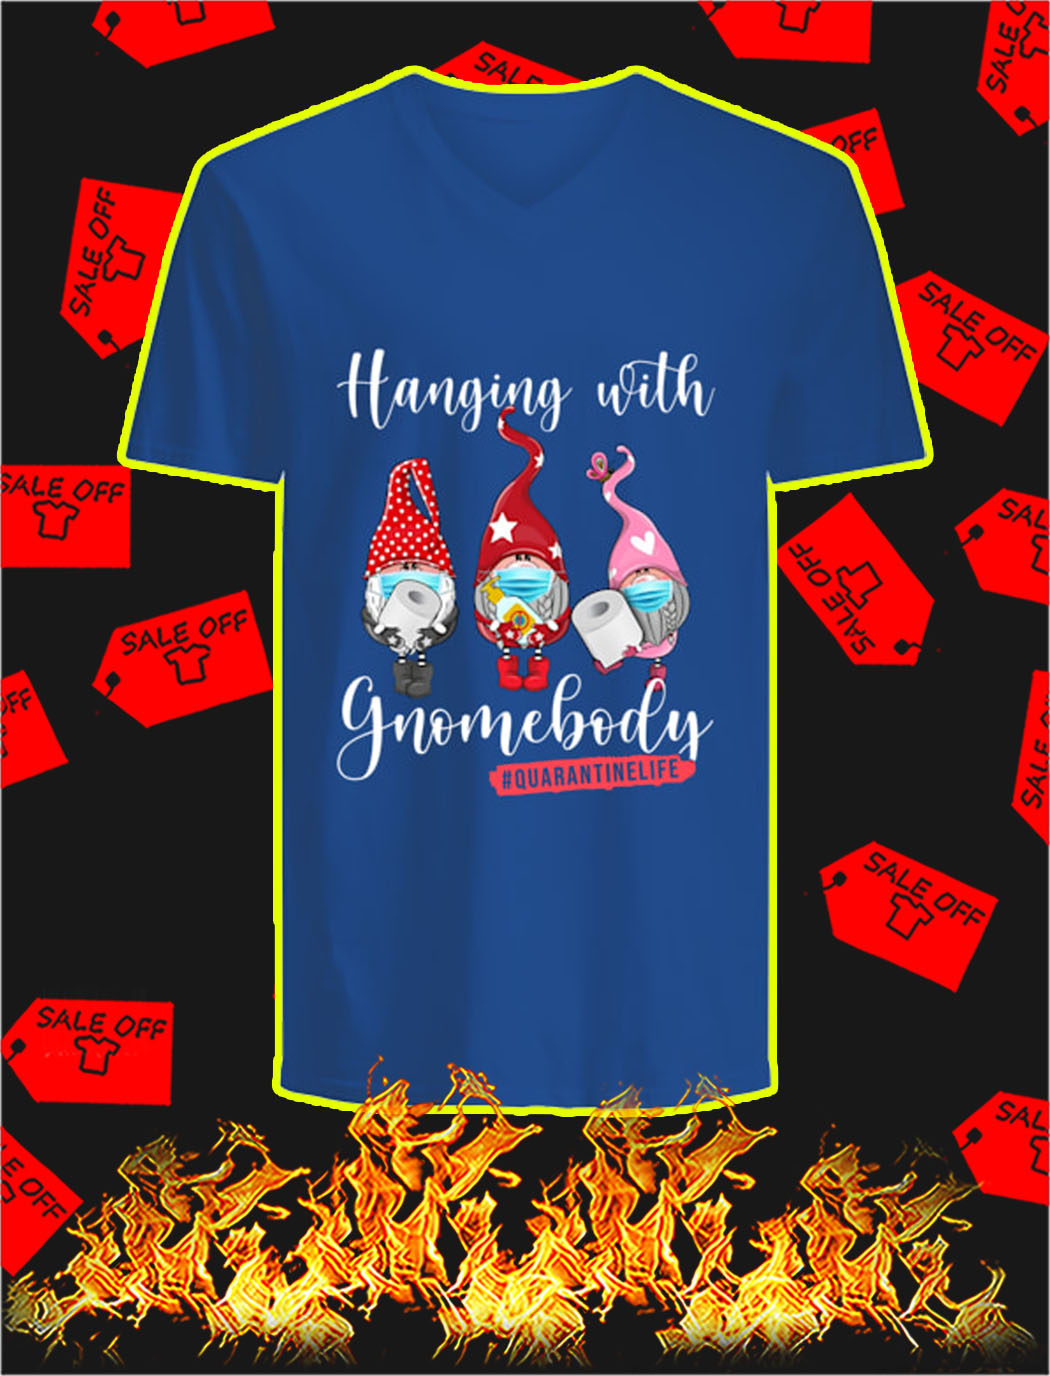 Hanging with gnomebody quarantine life v-neck